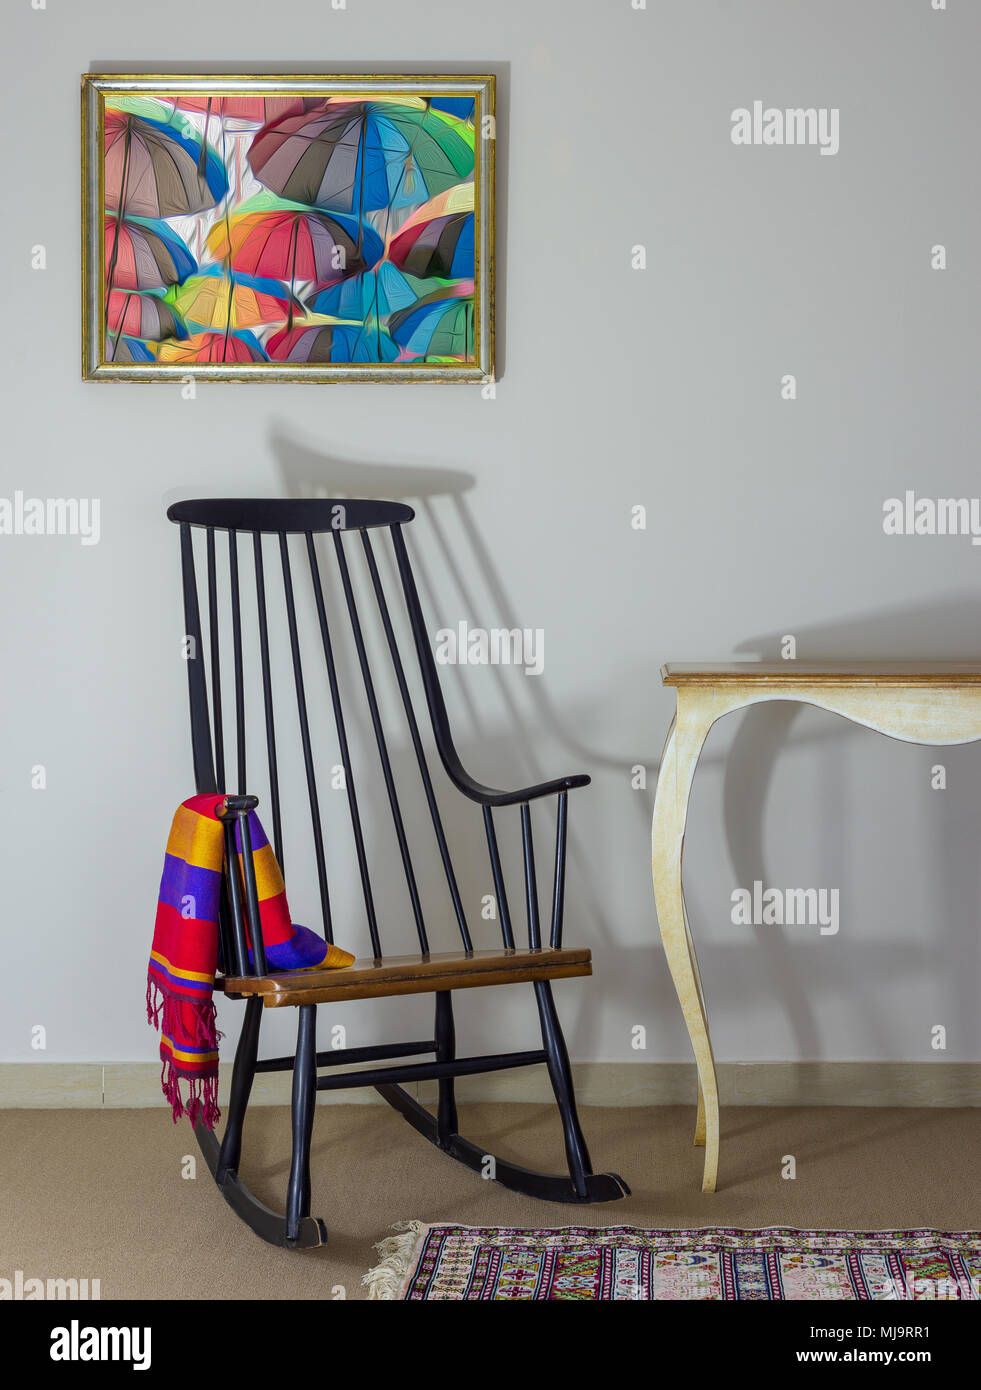 Classic rocking chair and off white vintage table on background of off white wall with hanged painting including clipping path for painting - Stock Image